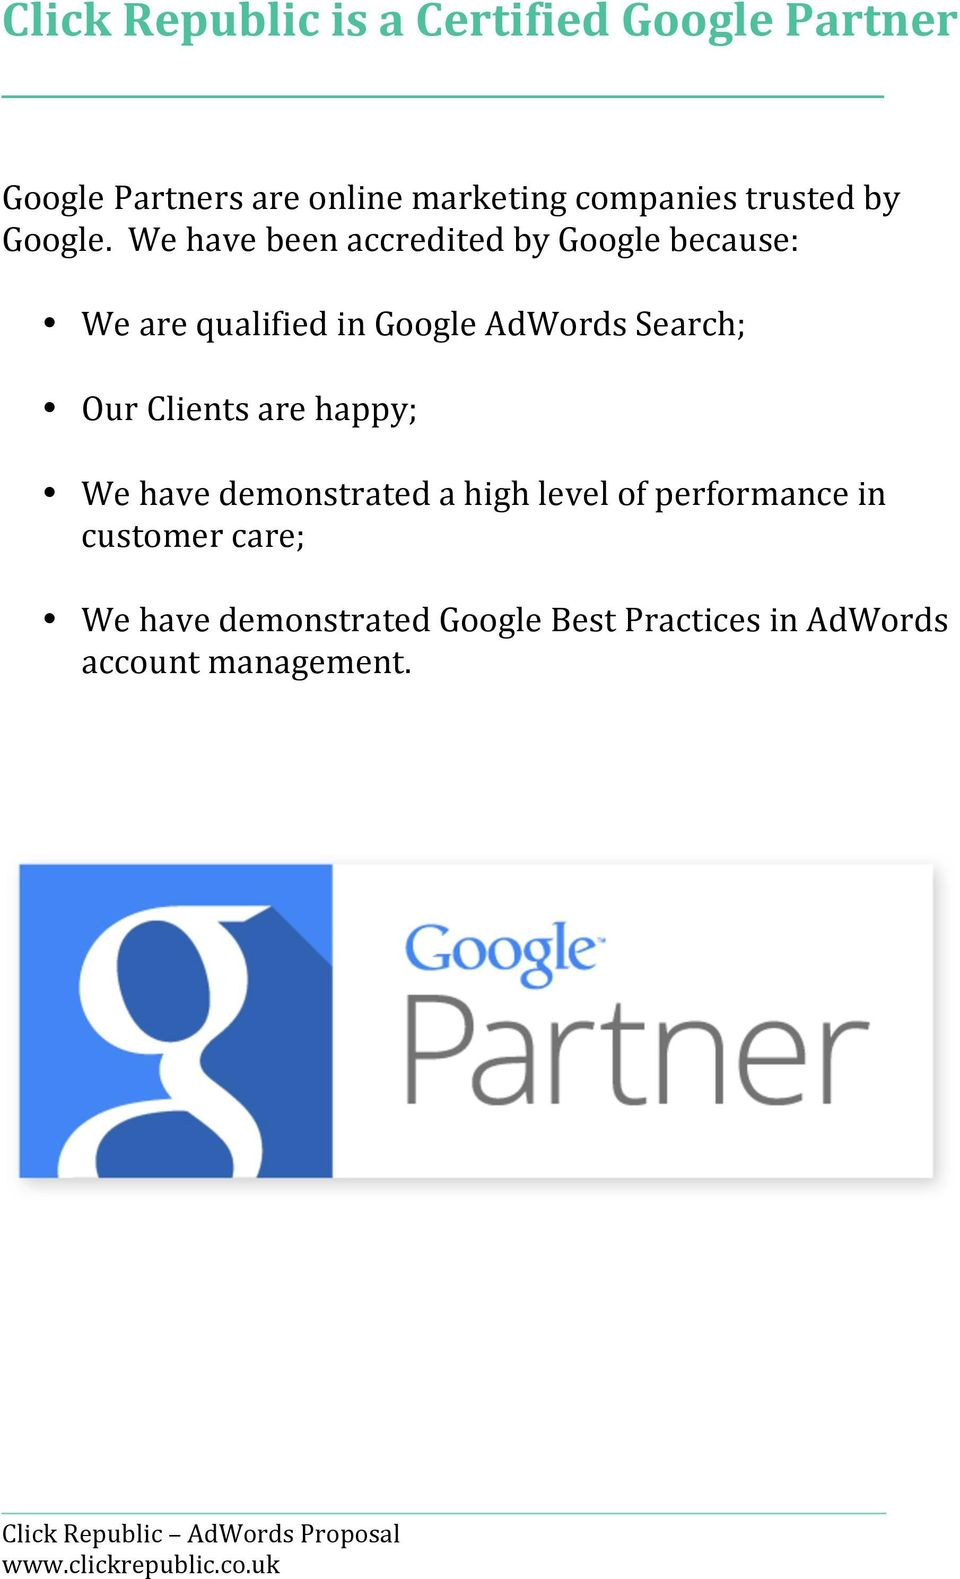 We have been accredited by Google because: We are qualified in Google AdWords Search; Our